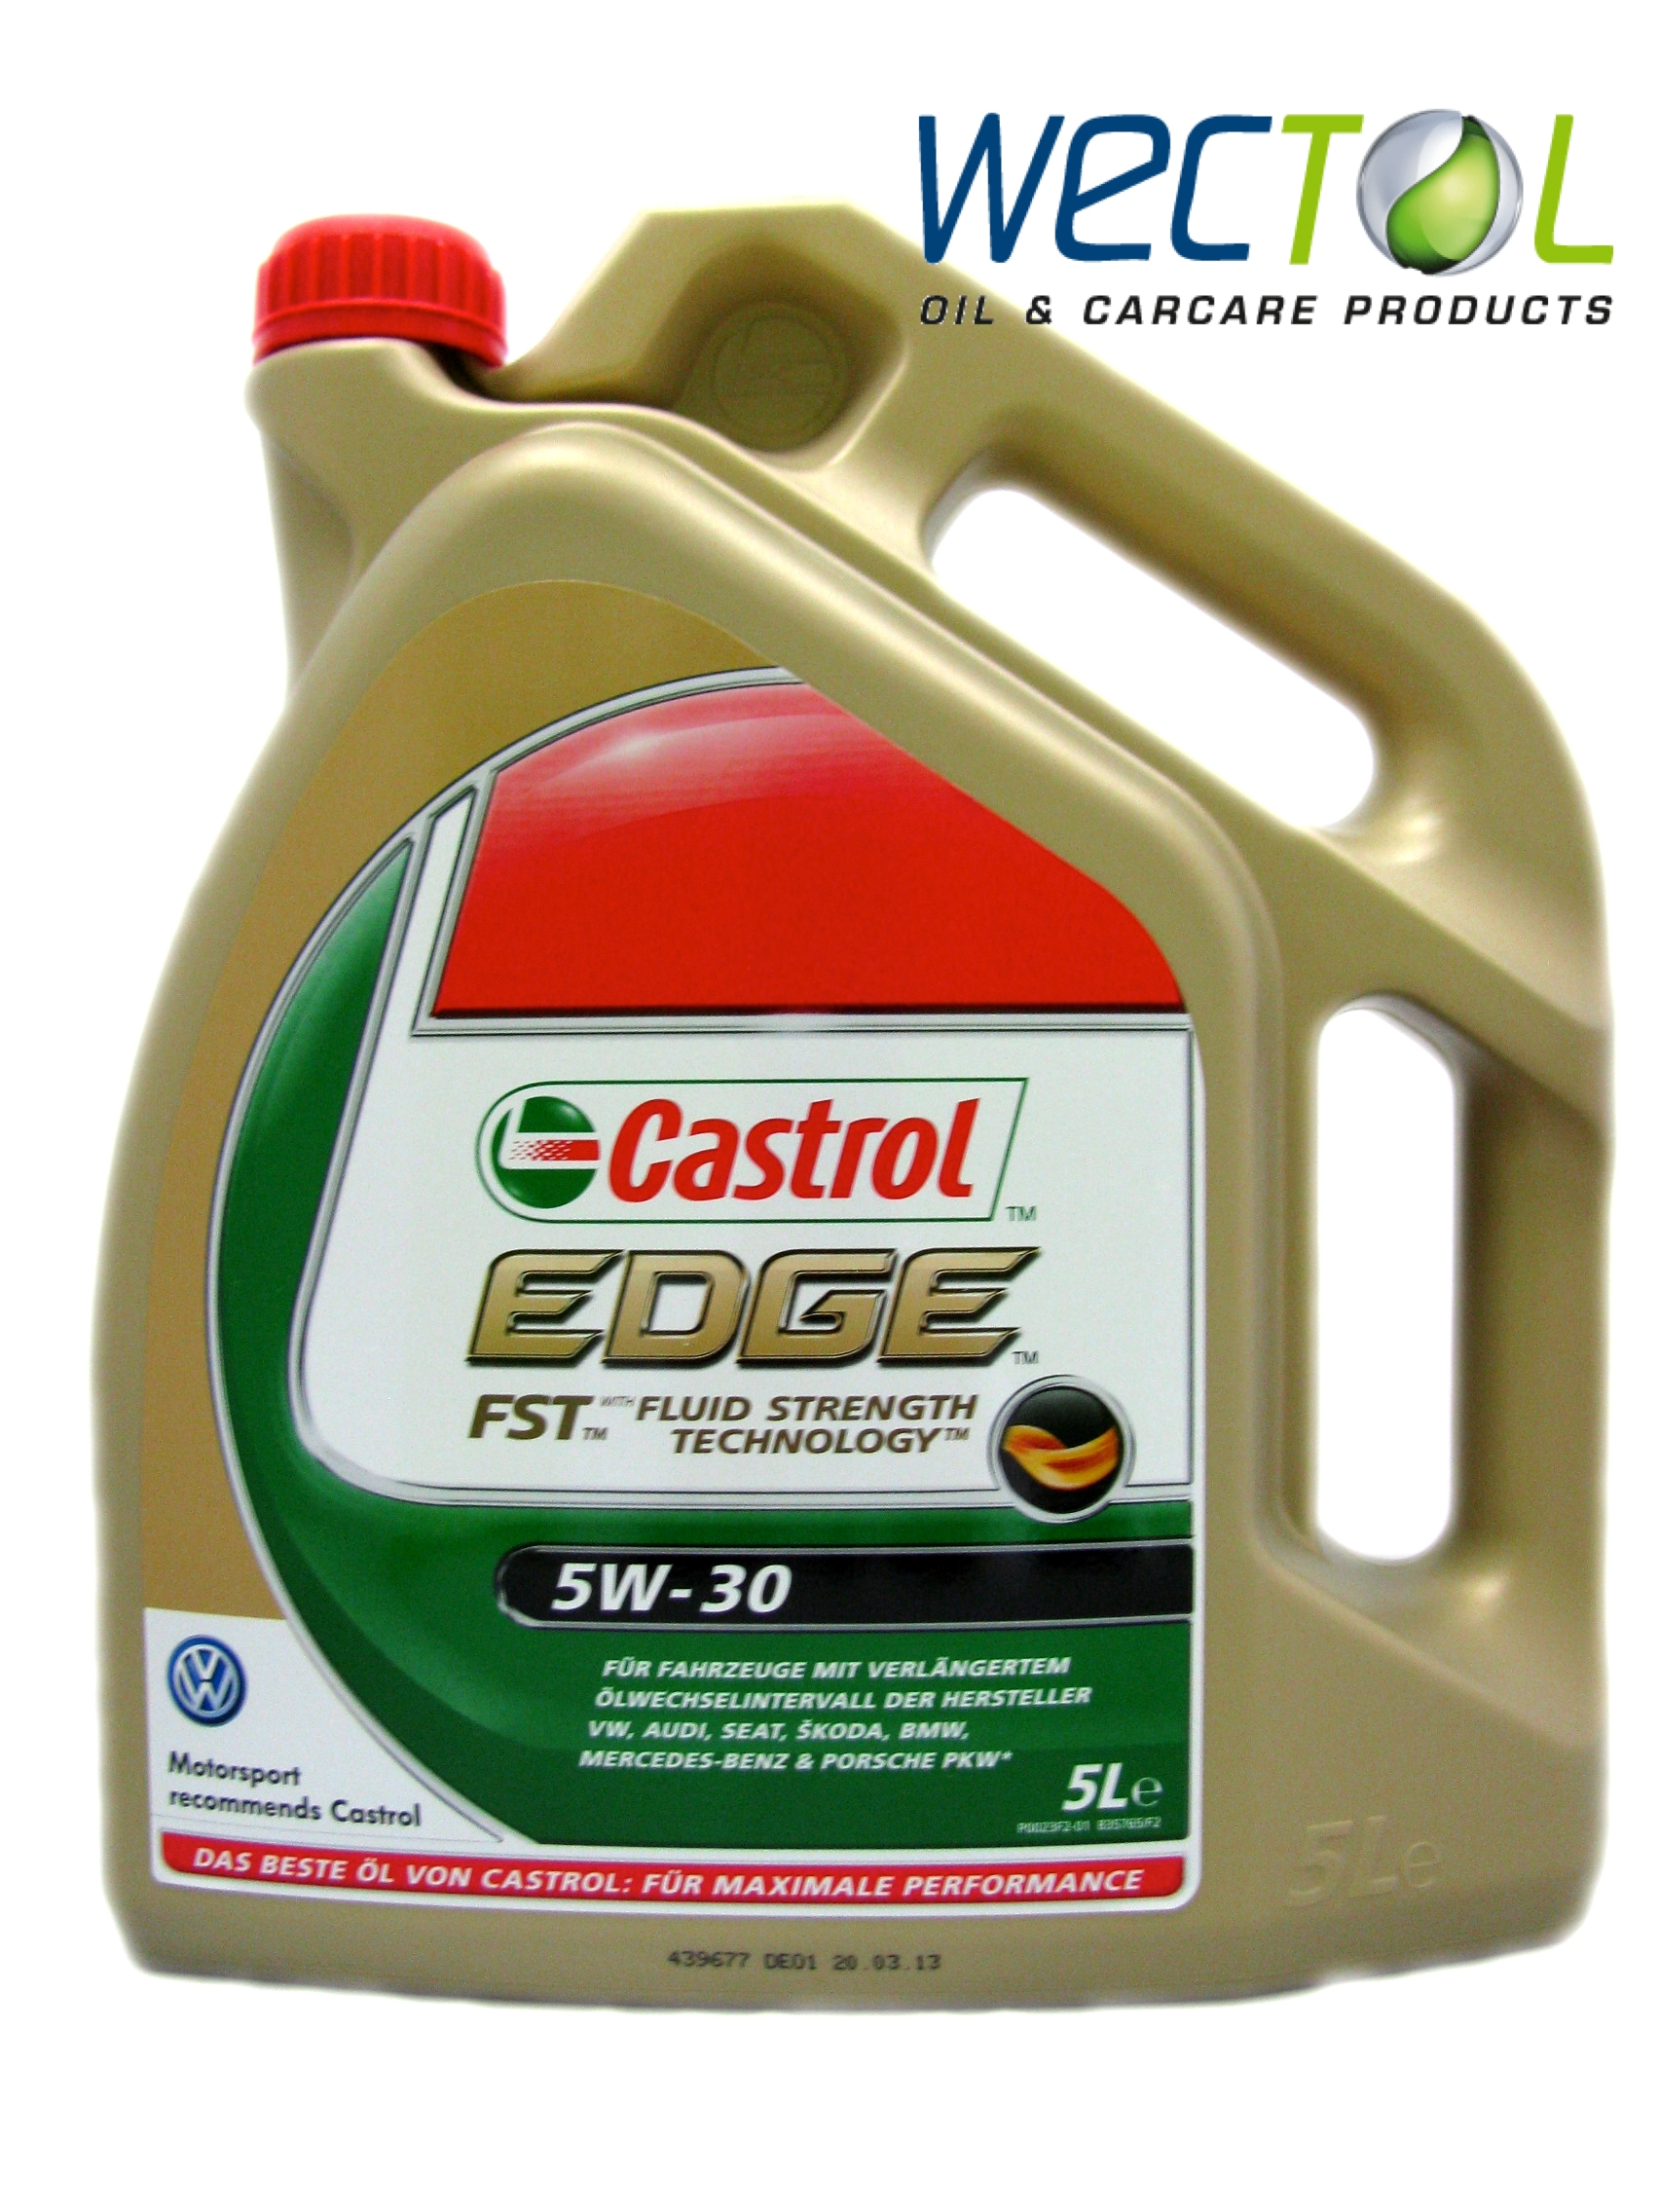 castrol edge 5w 30 motor l 5w30 longlife ll 04 fst 5 liter. Black Bedroom Furniture Sets. Home Design Ideas